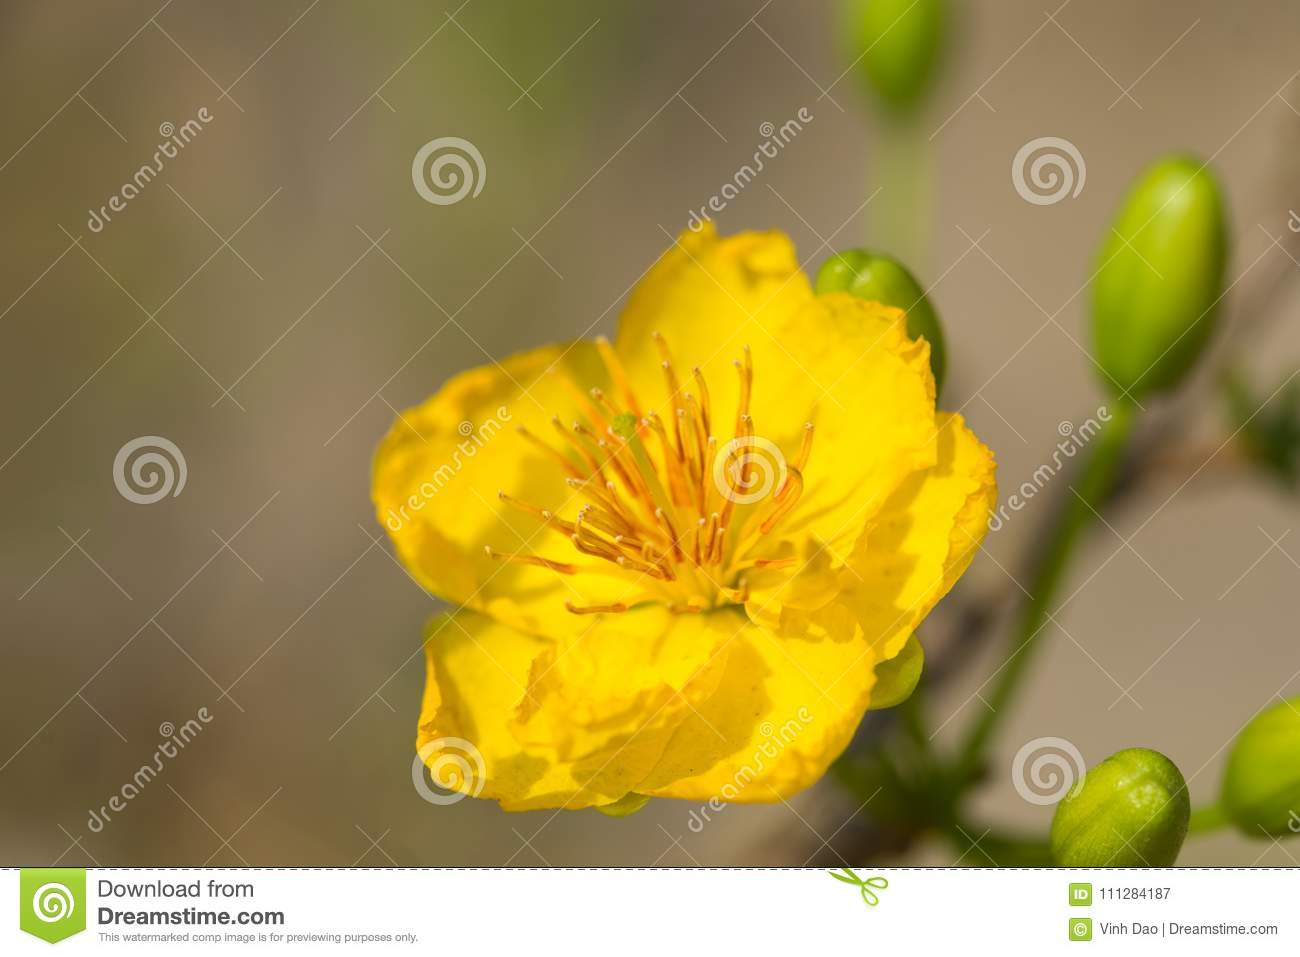 Ochna integerrima the symbol of vietnamese lunar new year in south ochna integerrima the symbol of vietnamese lunar new year in south the golden yellow of the flower means the noble roots of vietnamese mightylinksfo